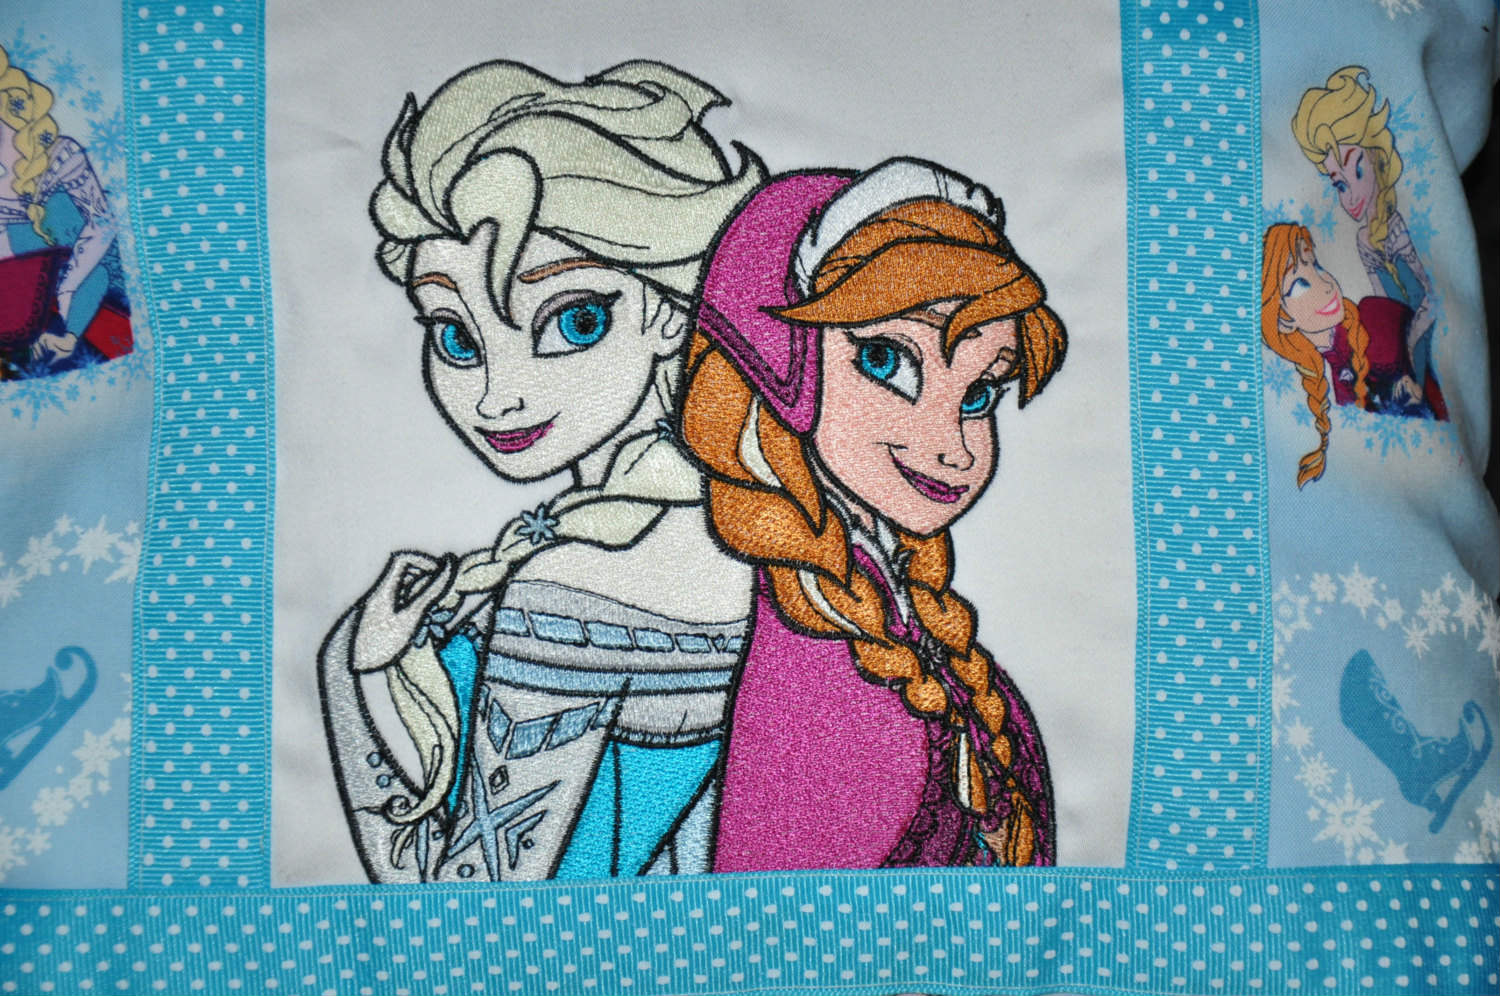 Frozen sisters embroidered on pillowcase